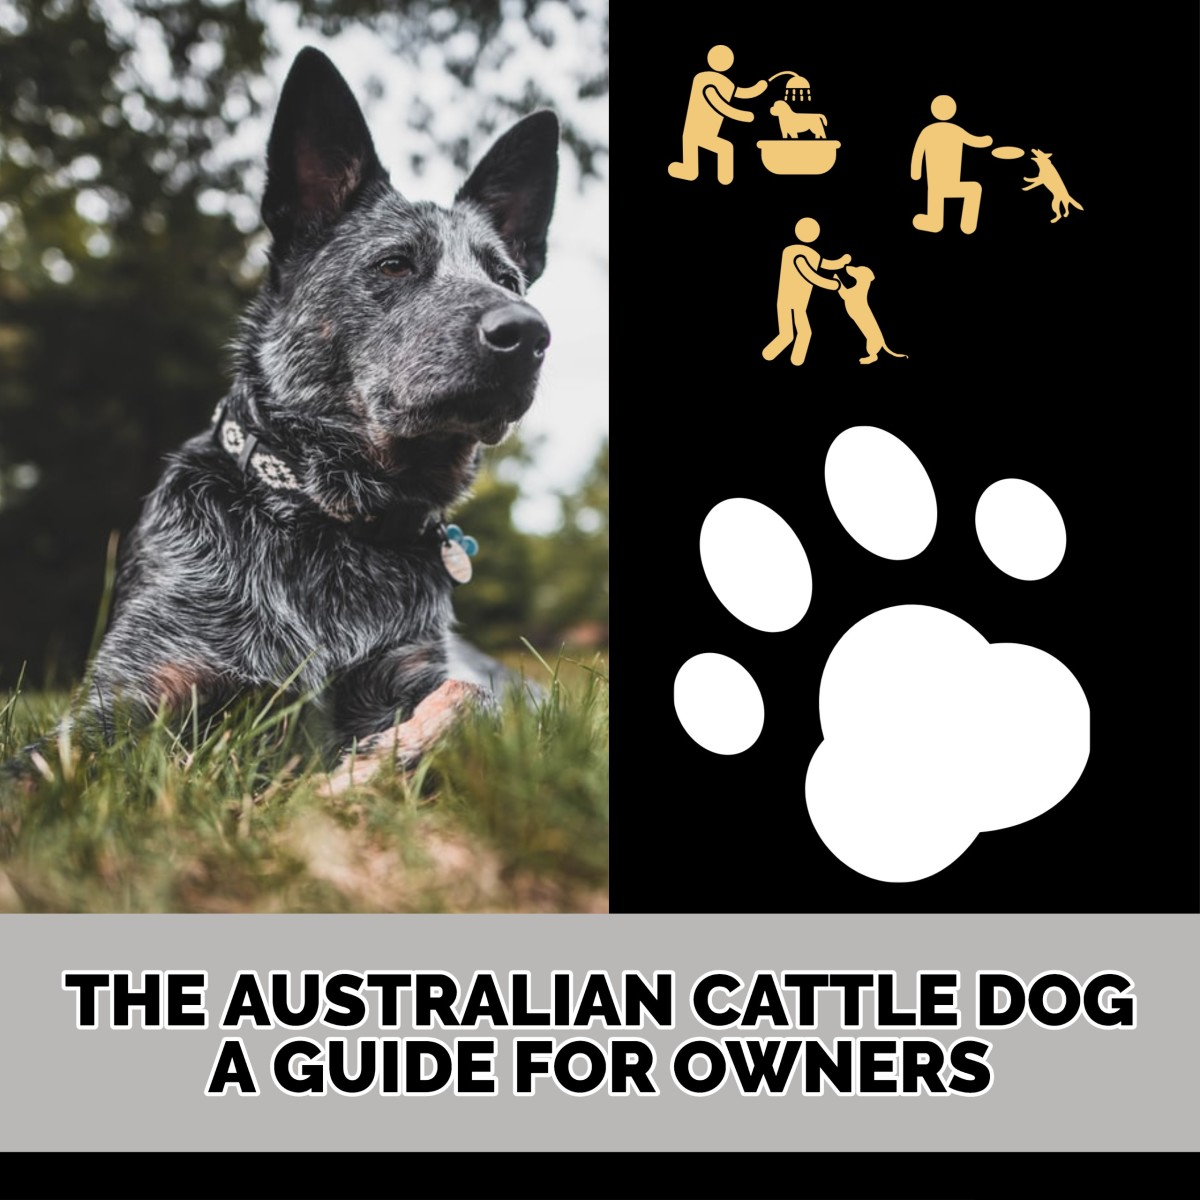 The Australian Cattle Dog: A Guide for Owners